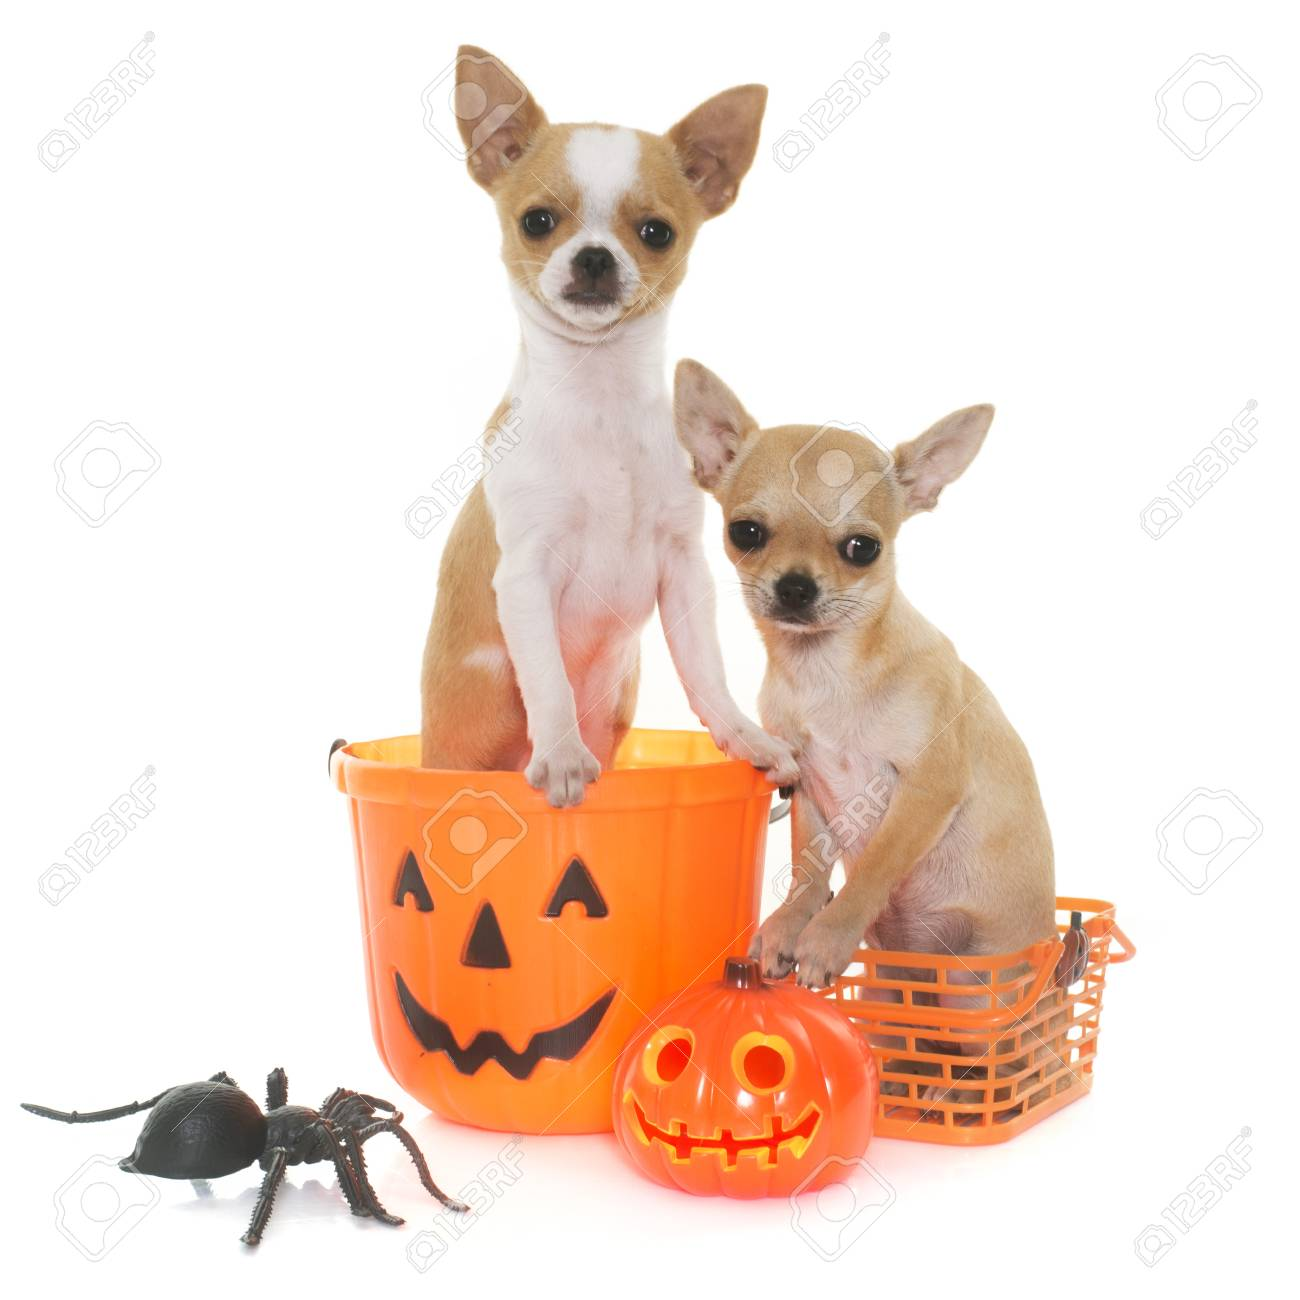 Puppies Chihuahua For Halloween In Front Of White Background Stock